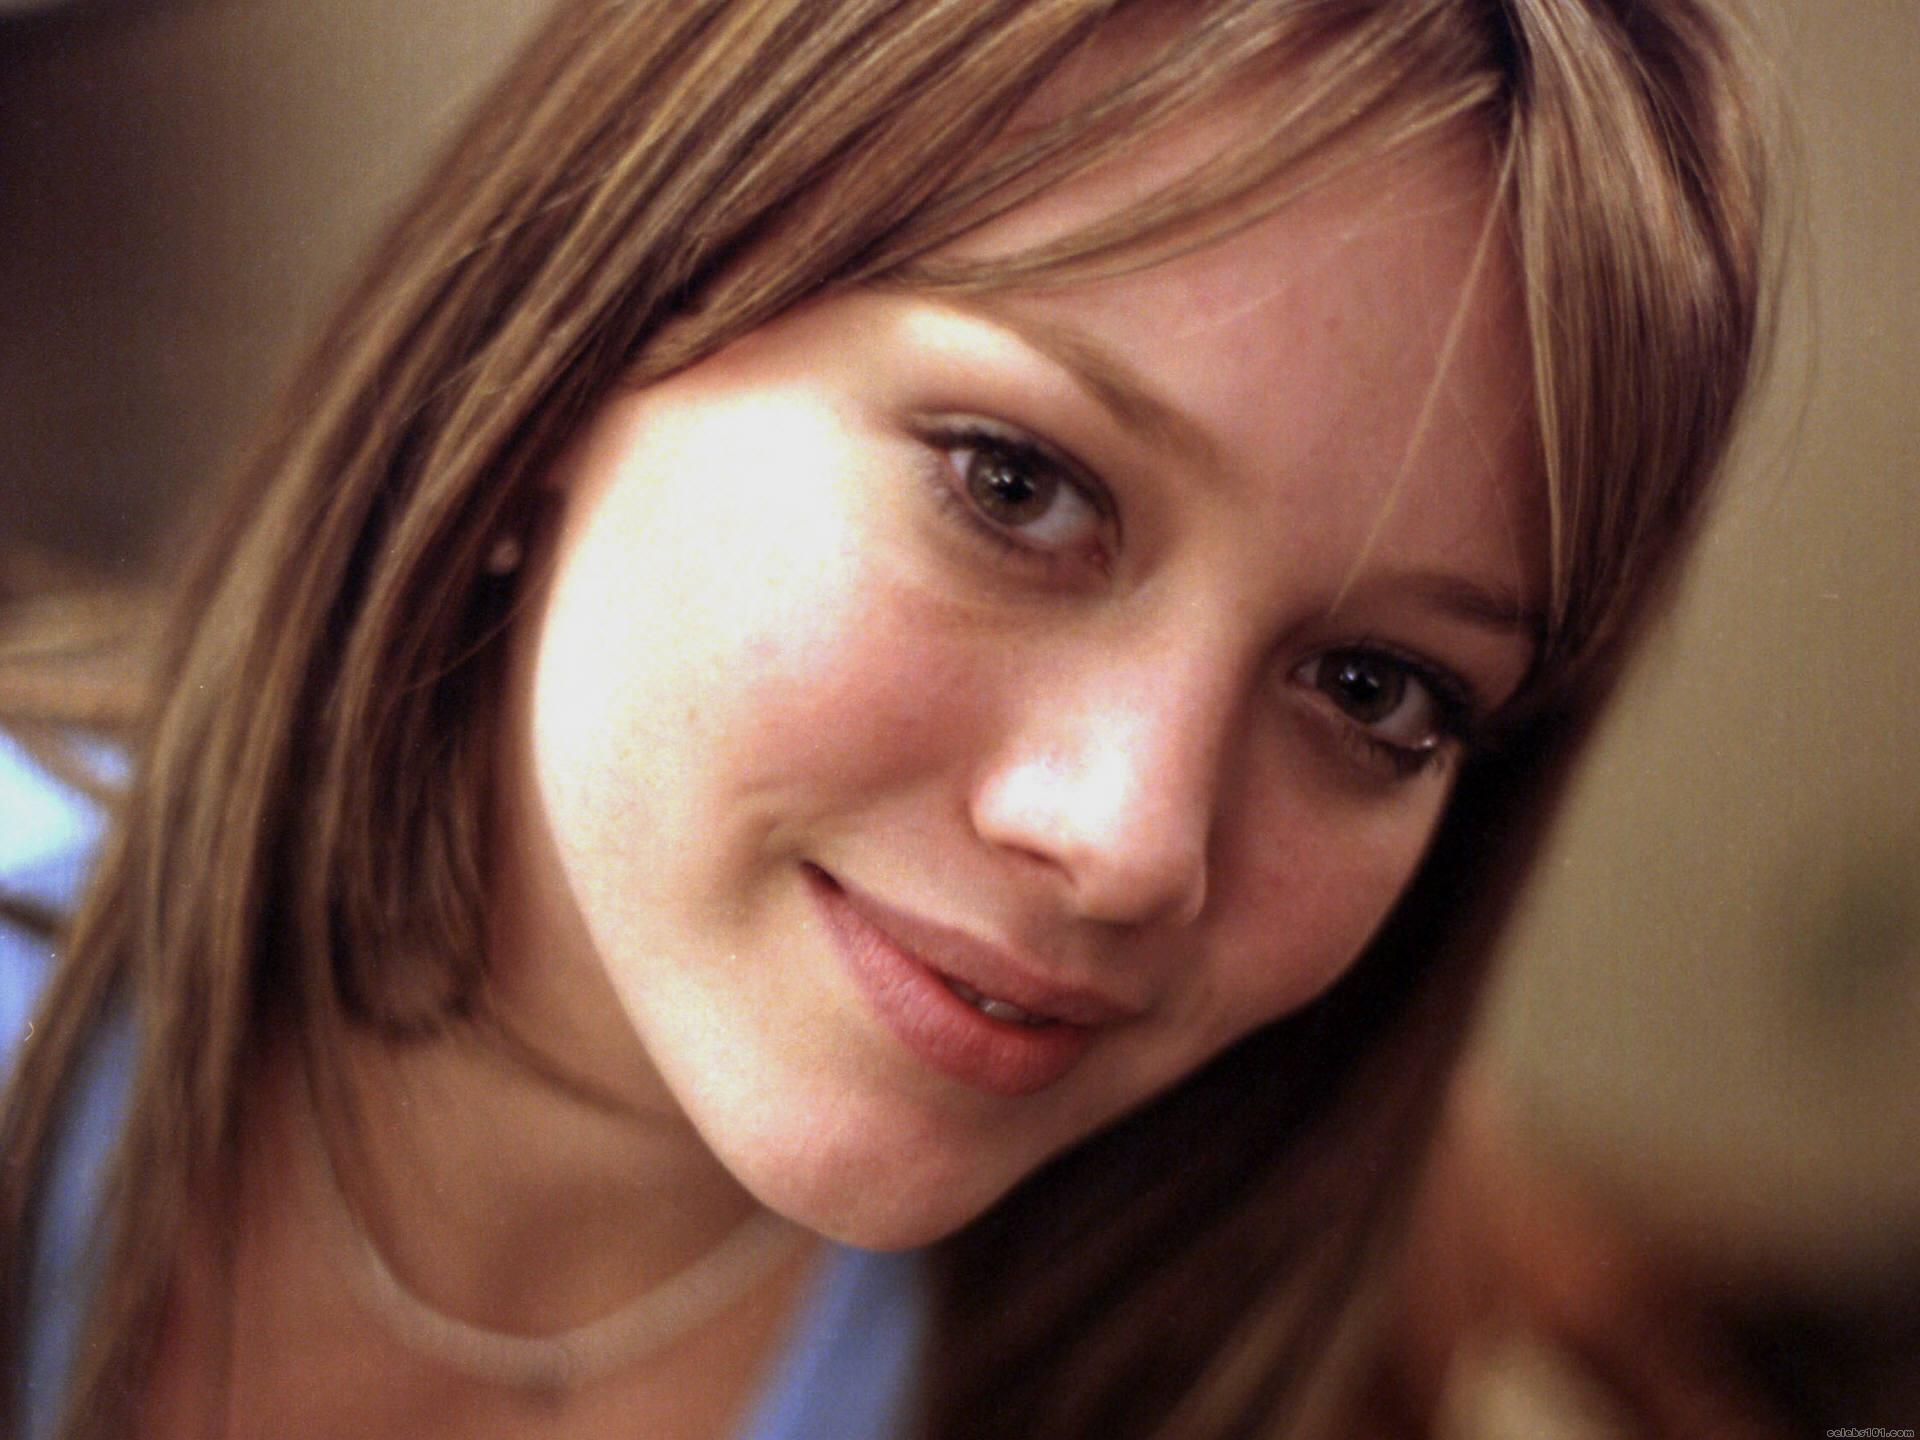 http://images2.fanpop.com/images/photos/4700000/Hilary-Duff-hilary-duff-4730423-1920-1440.jpg